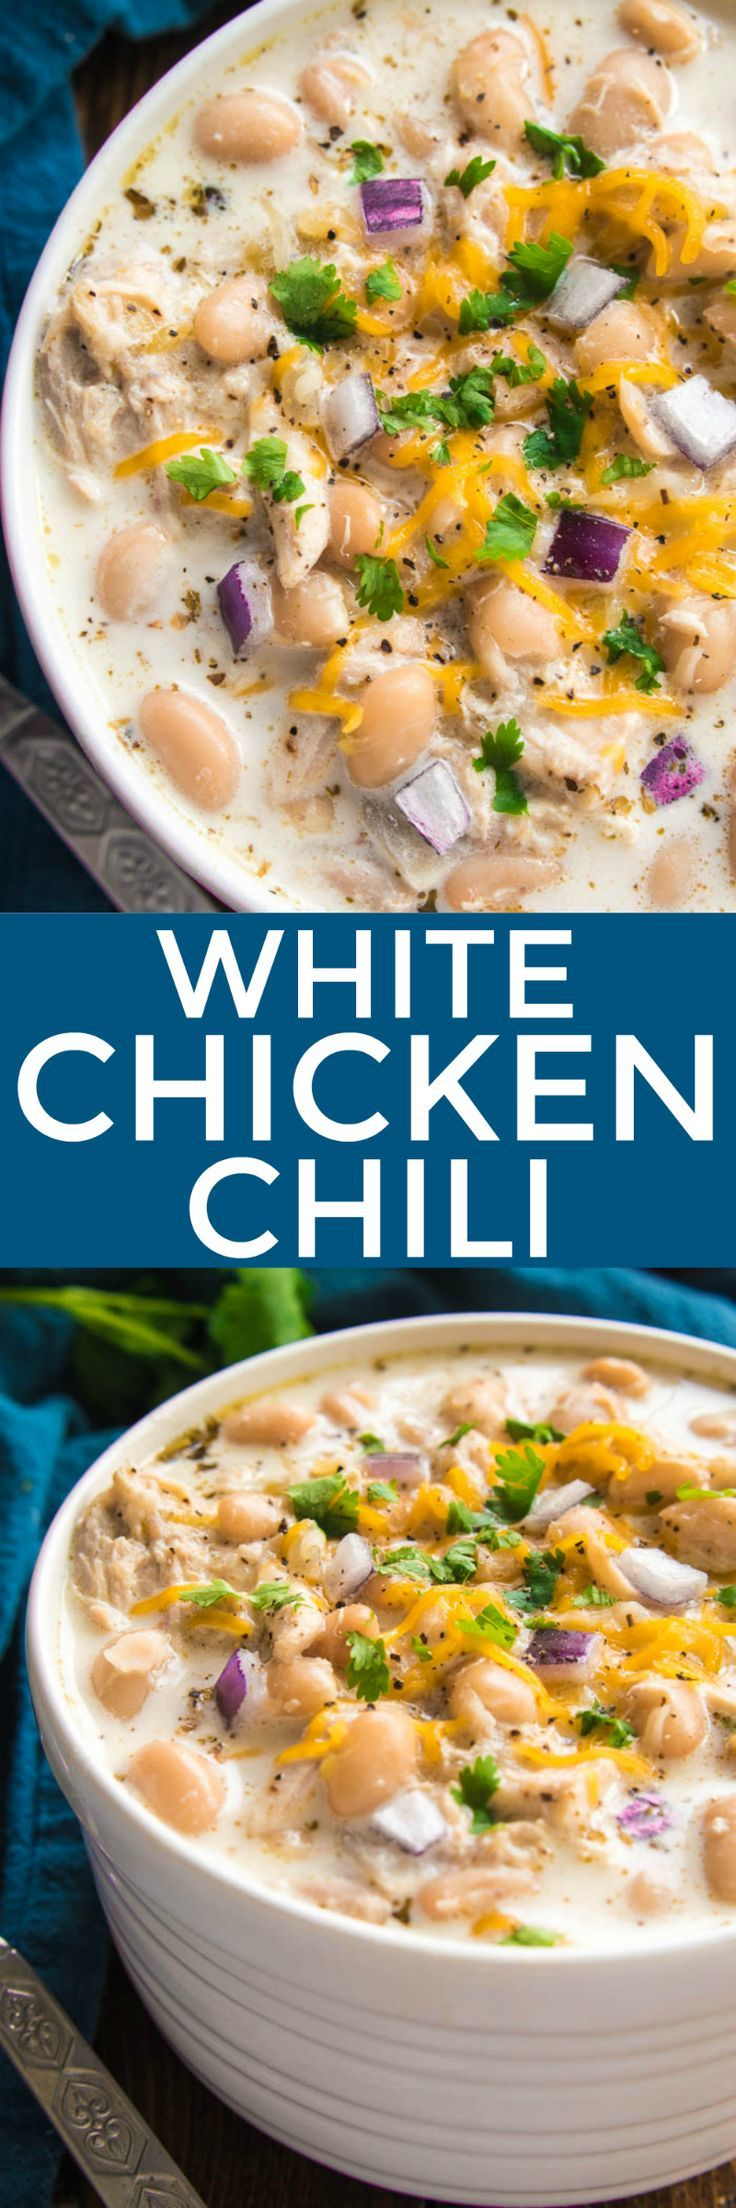 The BEST White Chicken Chili! If you love chili, you'll love this creamy, delicious twist! This recipe comes together quickly and is always a favorite - perfect for game days, weeknight dinners, and family gatherings. Make it with rotisserie chicken for an extra easy dinner, and top it with all your favorites for a delicious dish everyone will love! Whether you're a traditional chili fan or prefer white bean chili, you'll love the amazing flavor in this Creamy White Chicken Chili…